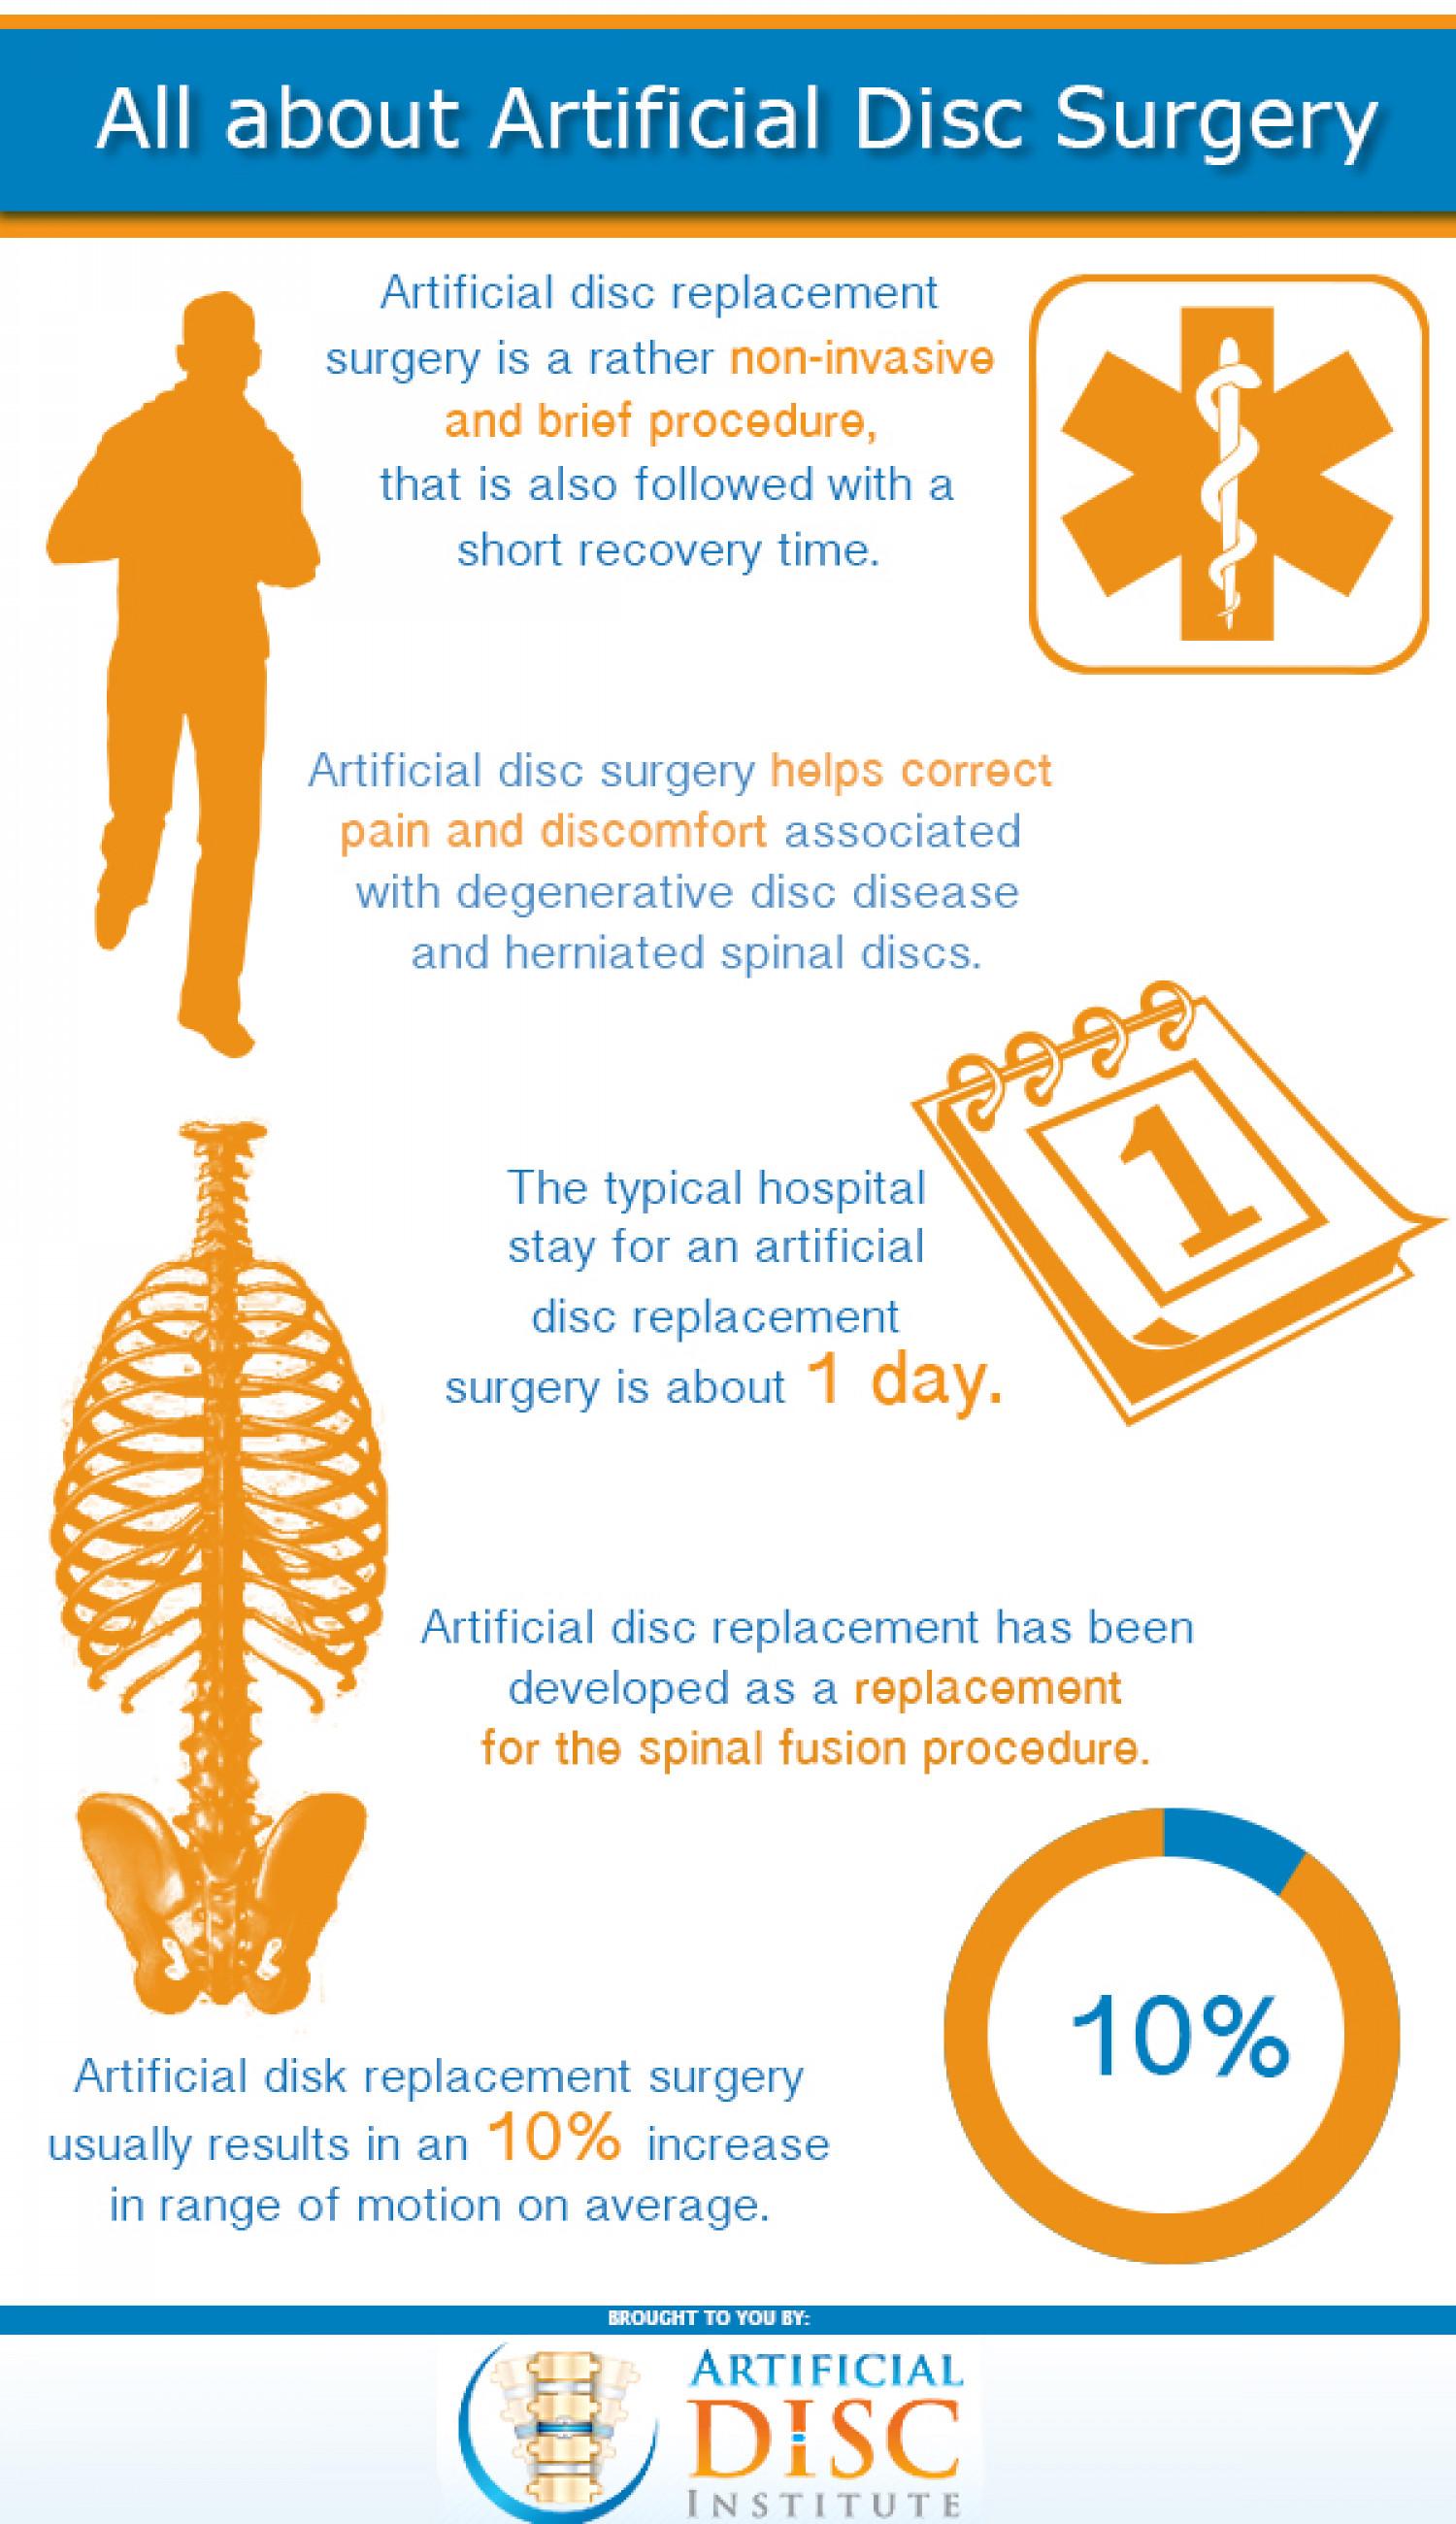 All About Artificial Disc Surgery Infographic